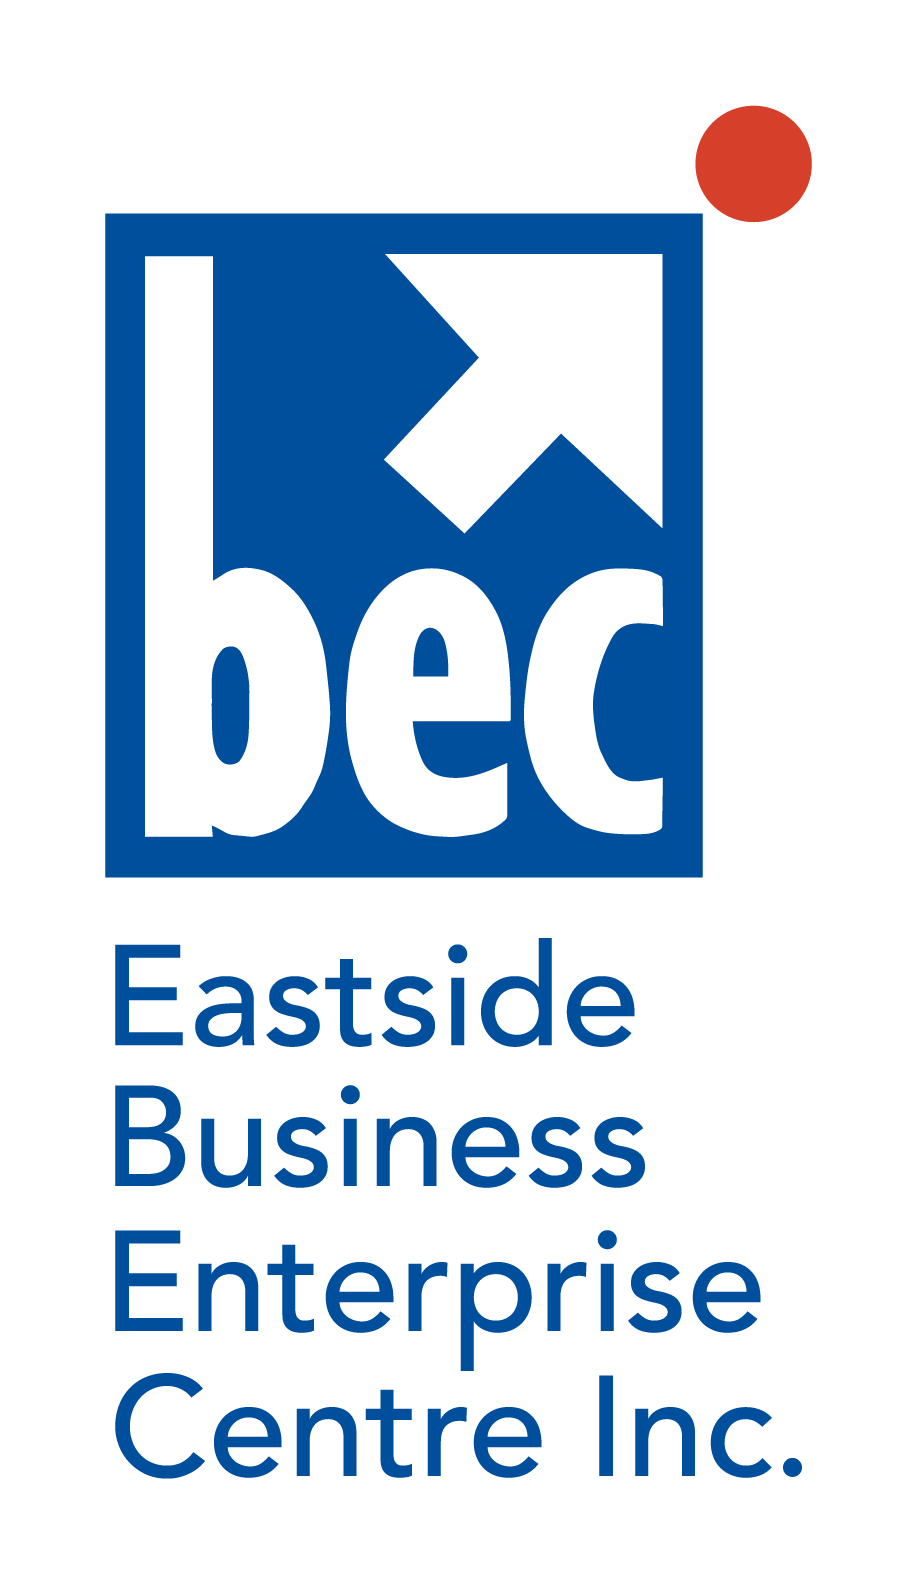 EASTSIDE BUSINESS ENTERPRISE CENTRE